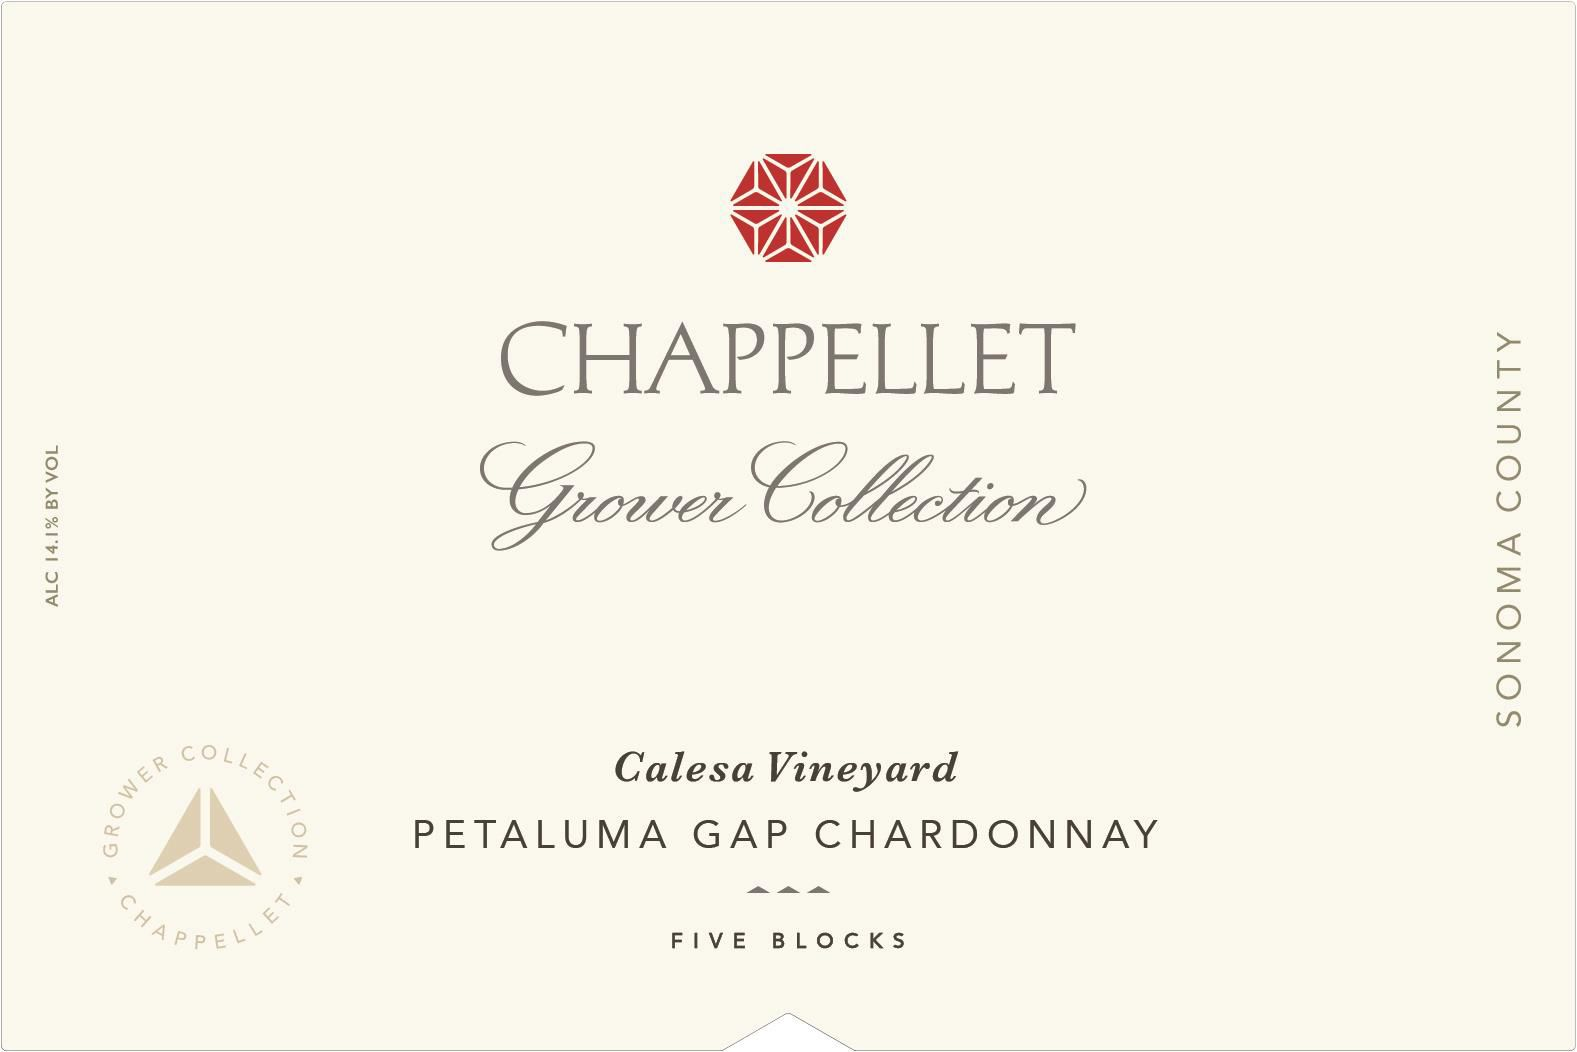 Chappellet Grower Collection Calesa Vineyard Chardonnay 2018  Front Label